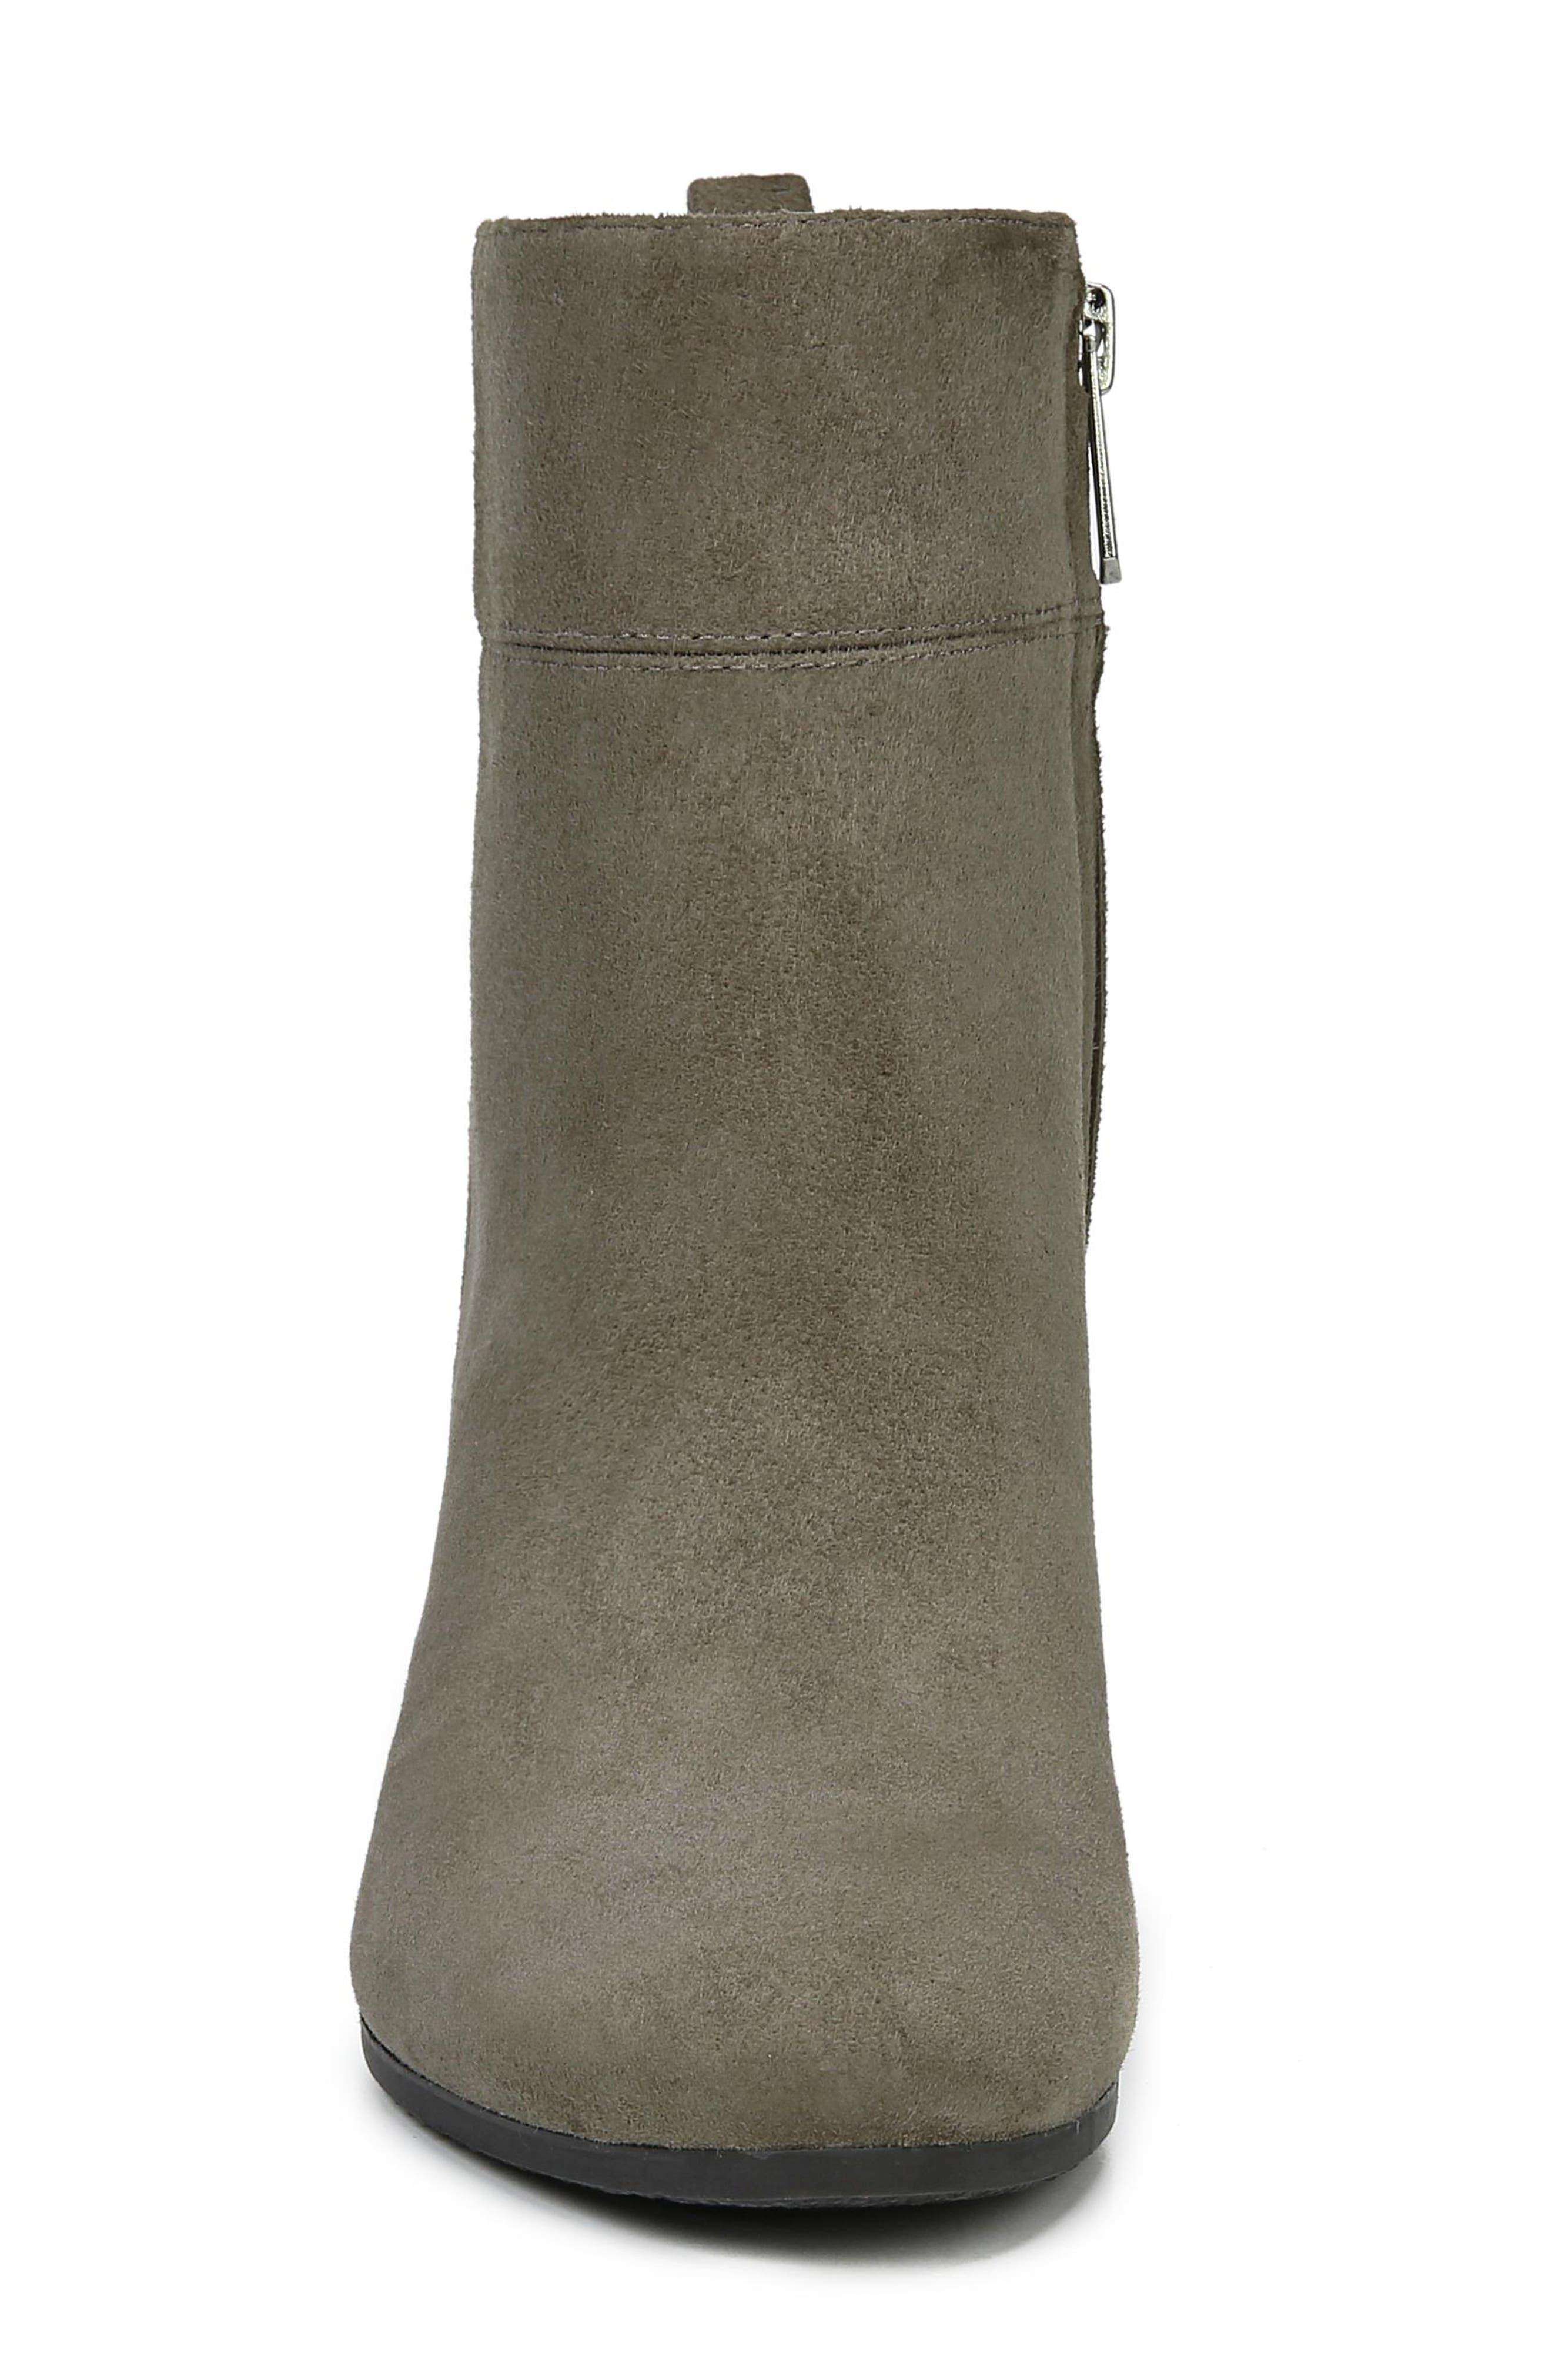 Sianna Bootie,                             Alternate thumbnail 4, color,                             FLINT GREY SUEDE